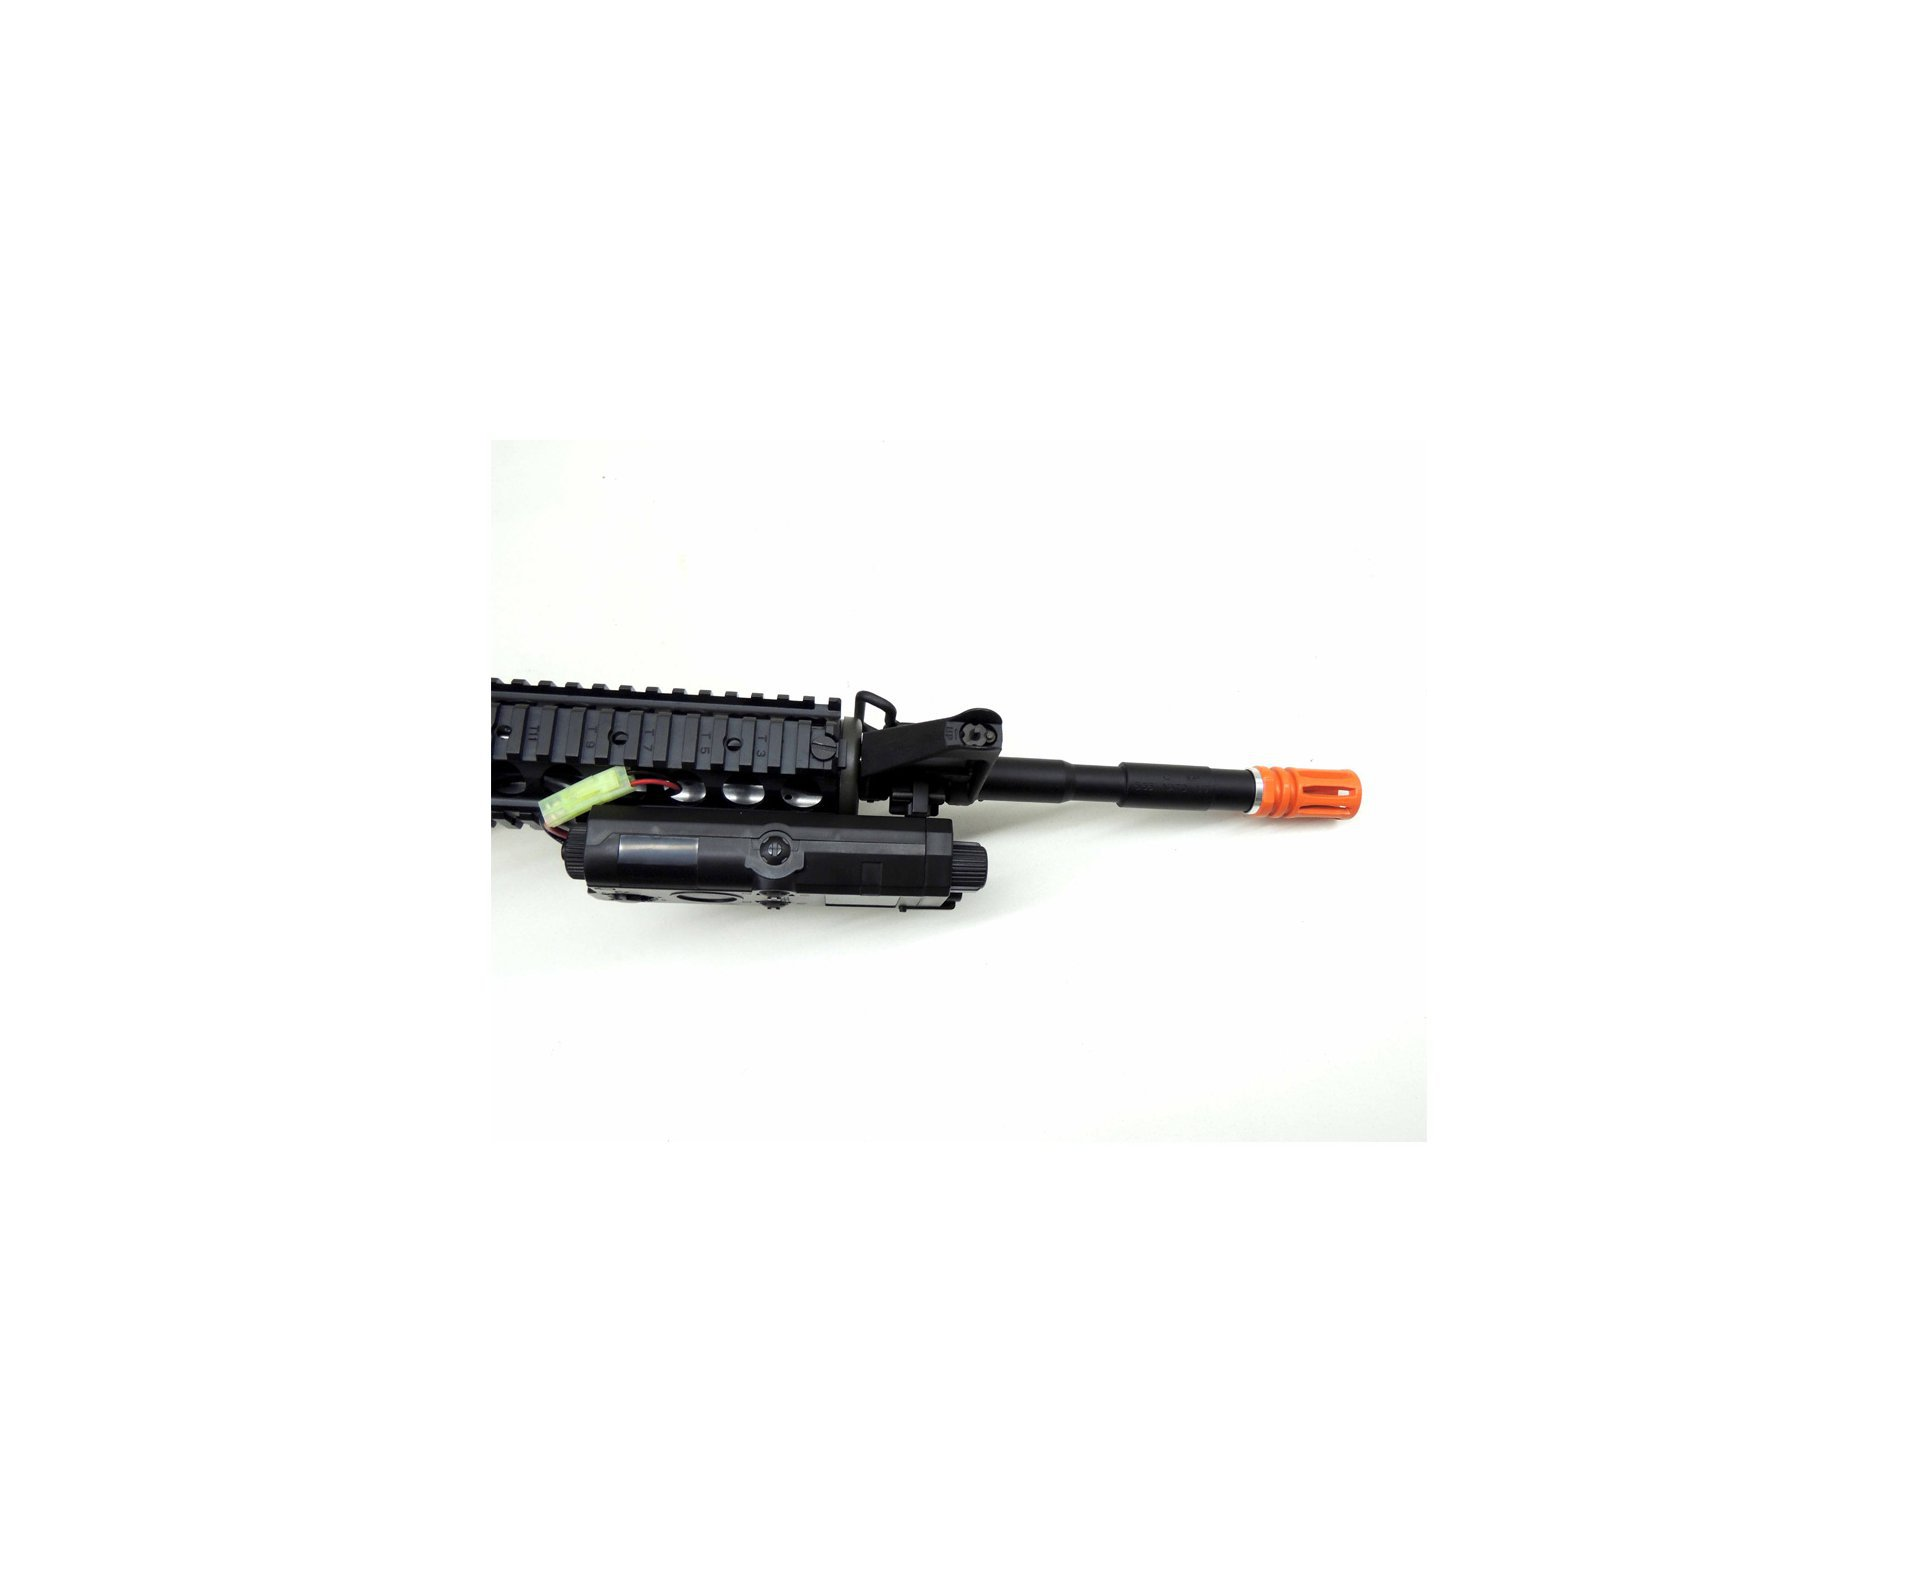 Rifle De Airsoft Colt M4a1ris Cal 6,0 Mm - King Arms + Farda Marpat Digital Selva Swiss+arms - Tamanho G